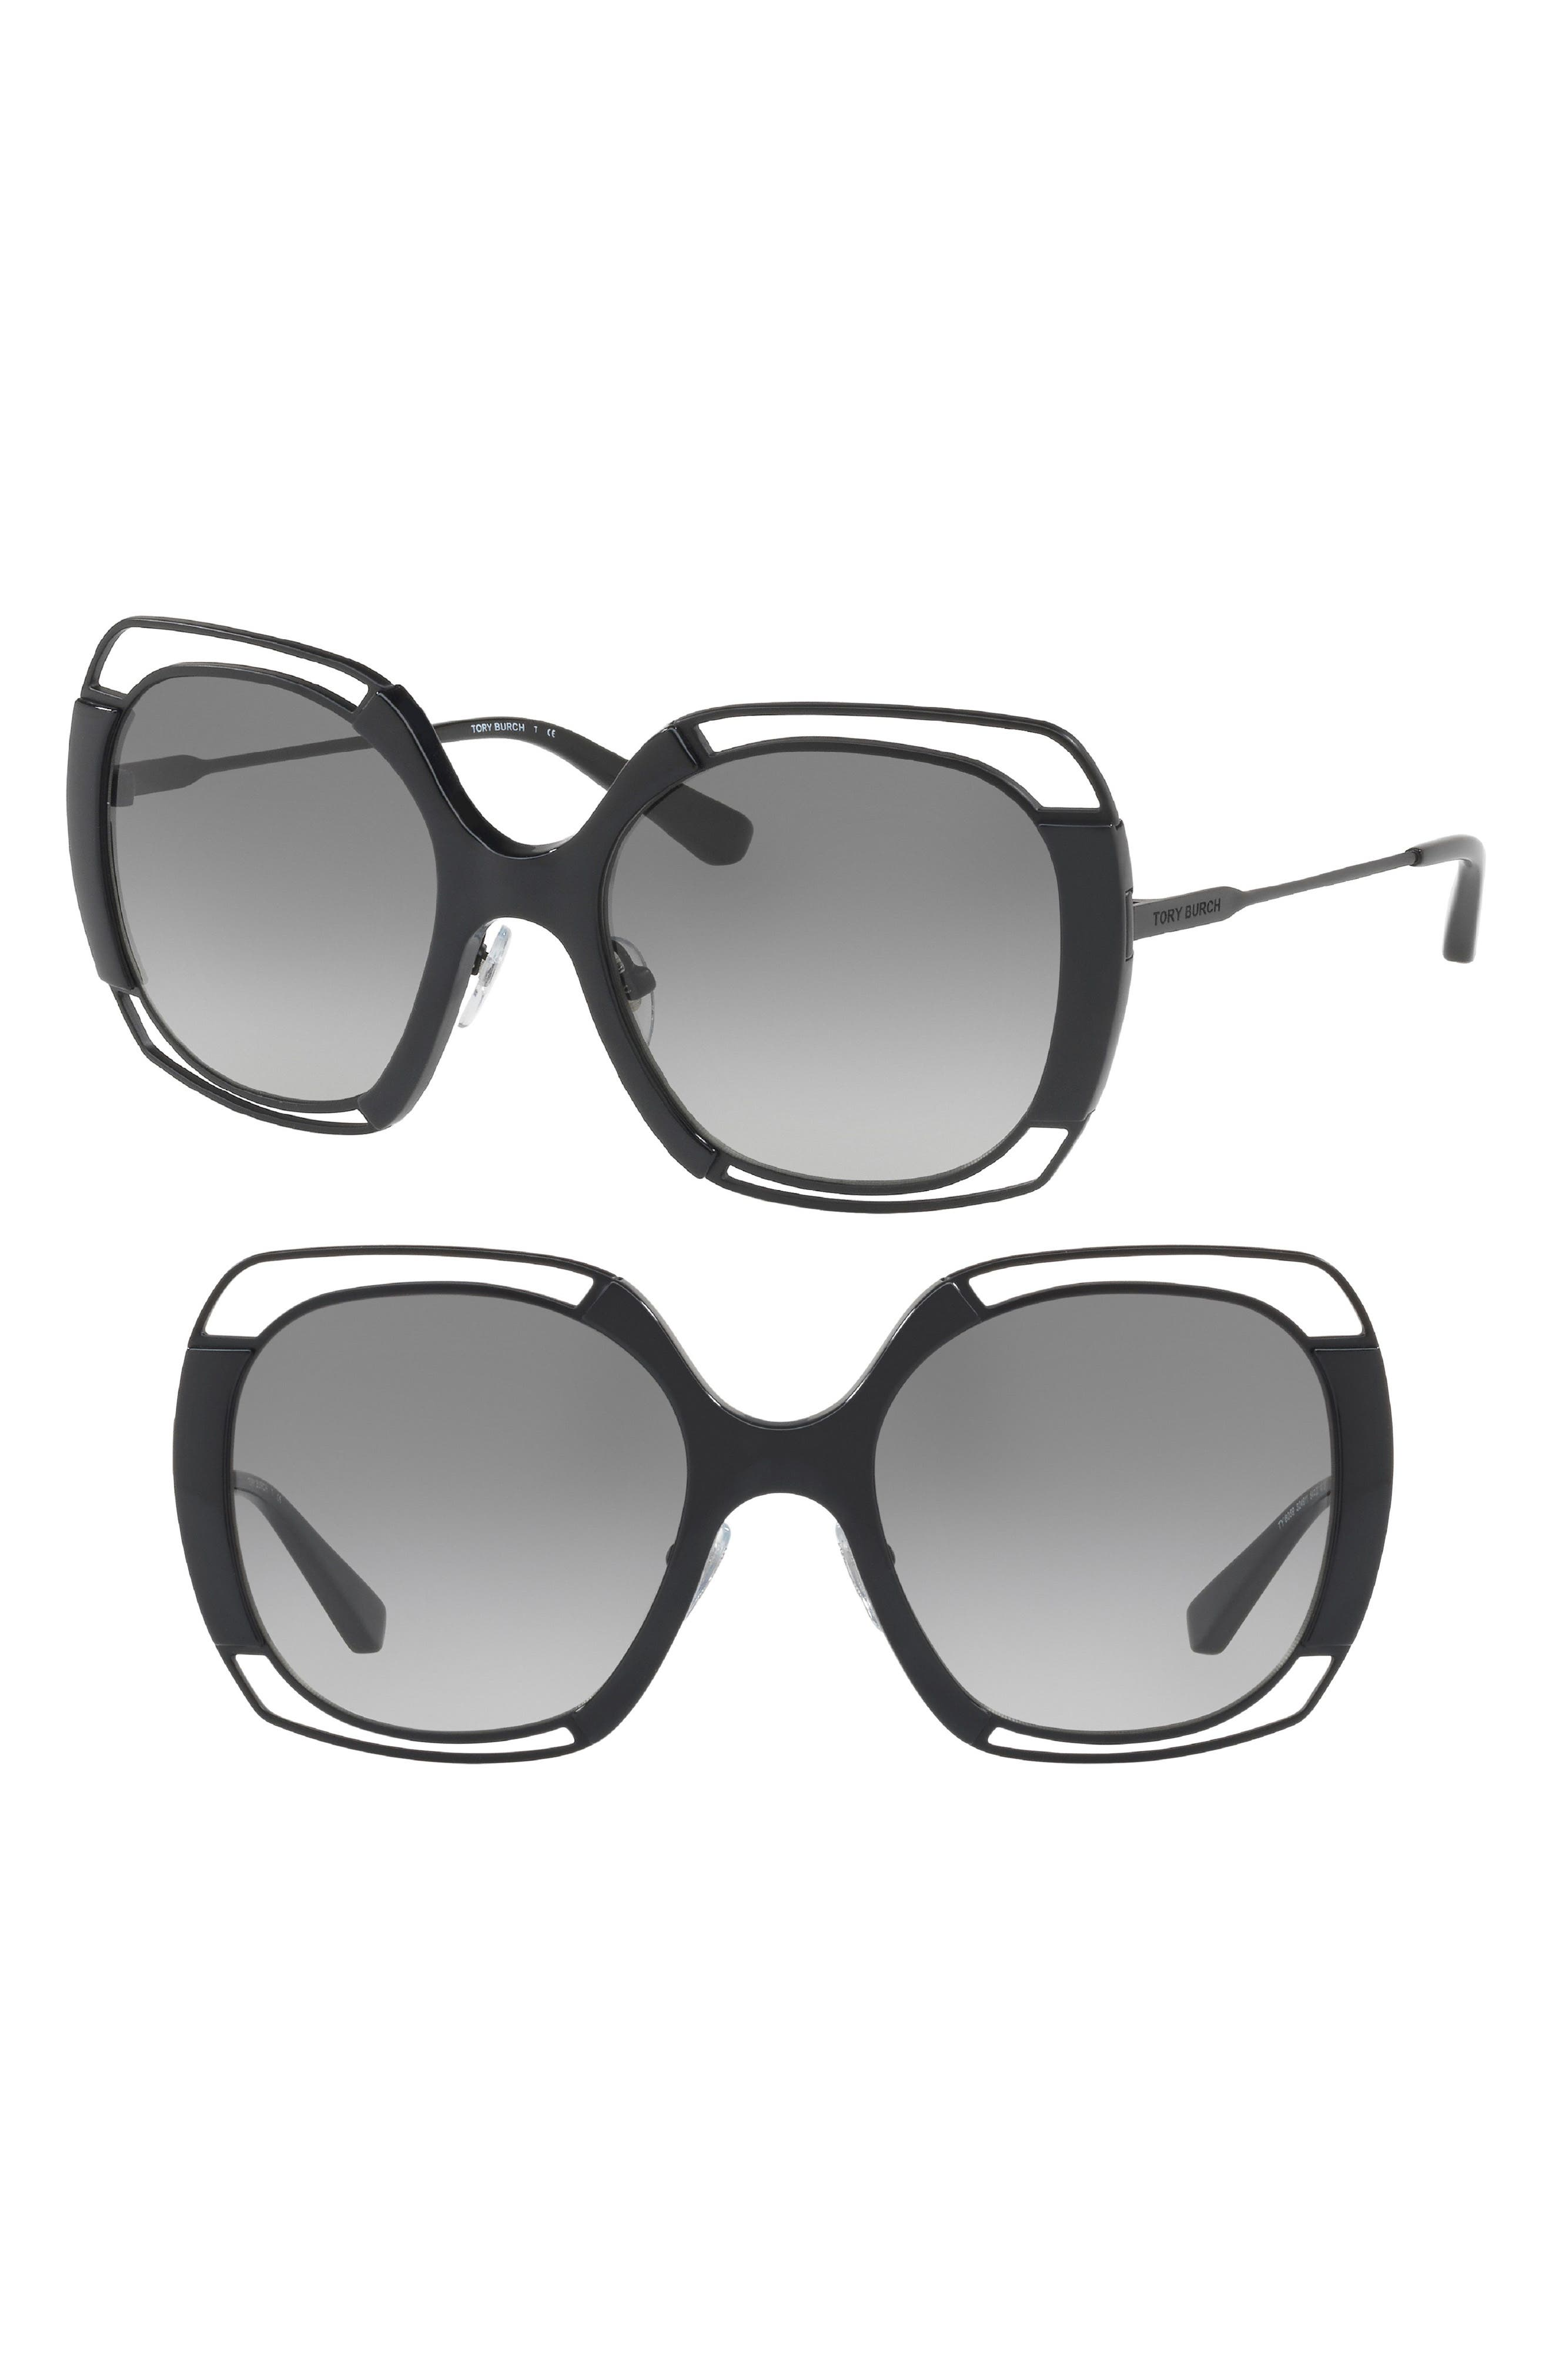 Alternate Image 1 Selected - Tory Burch 54mm Square Gradient Sunglasses